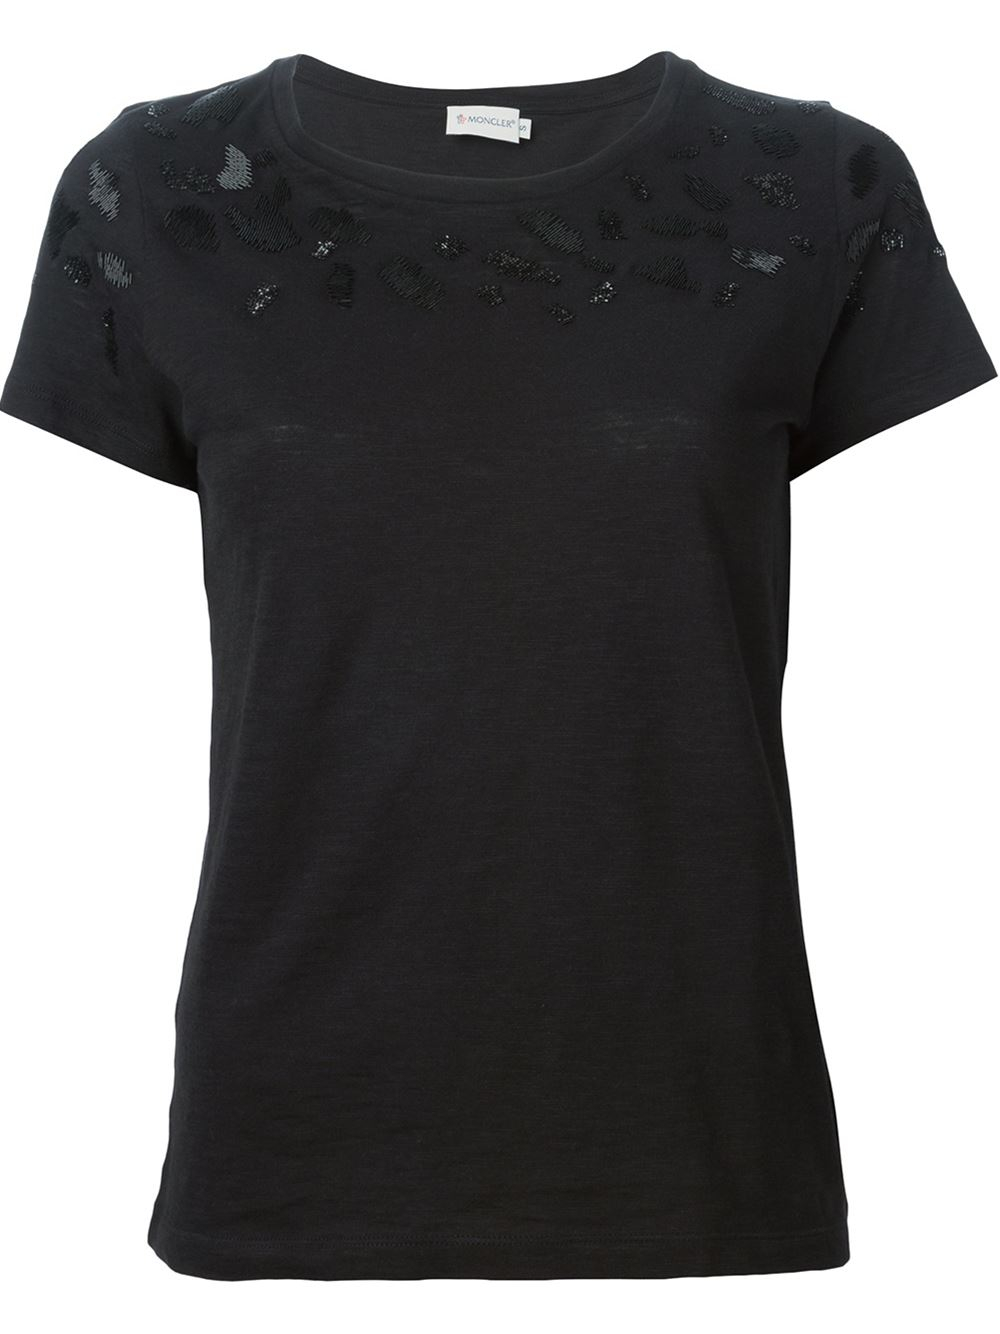 moncler beaded t shirt in black lyst. Black Bedroom Furniture Sets. Home Design Ideas